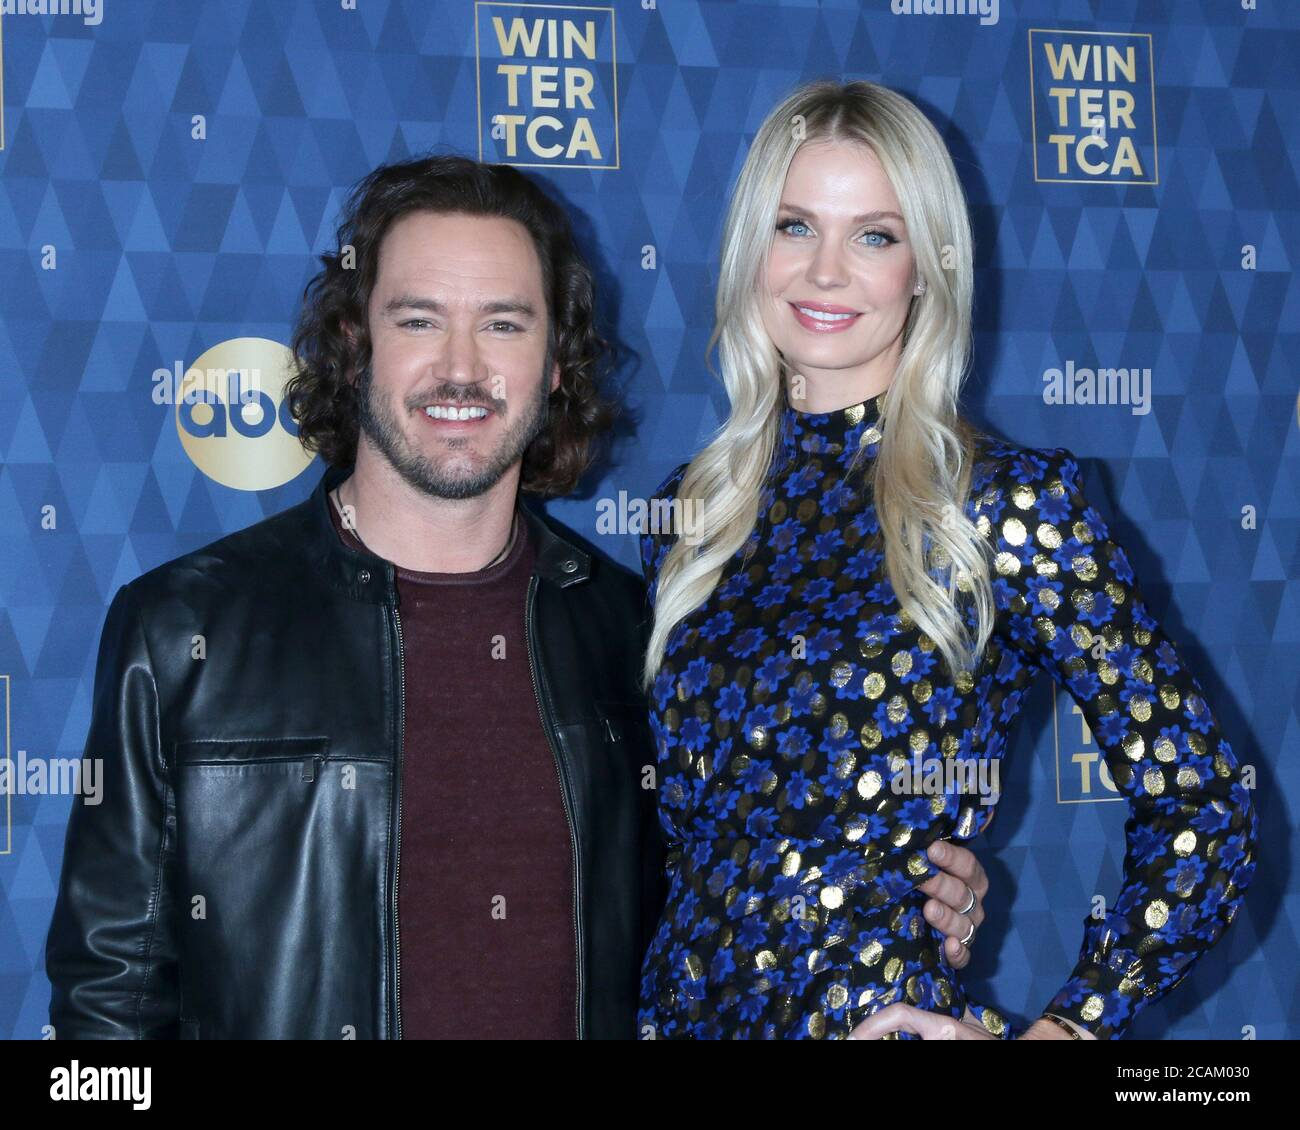 Los Angeles Jan 8 Mark Paul Gosselaar And Catriona Mcginn At The Abc Winter Tca Party Arrivals At The Langham Huntington Hotel On January 8 2020 In Pasadena Ca Stock Photo Alamy The actor wed catrionia mcginn saturday and tells people all about their italian honeymoon plans. https www alamy com los angeles jan 8 mark paul gosselaar and catriona mcginn at the abc winter tca party arrivals at the langham huntington hotel on january 8 2020 in pasadena ca image368003412 html